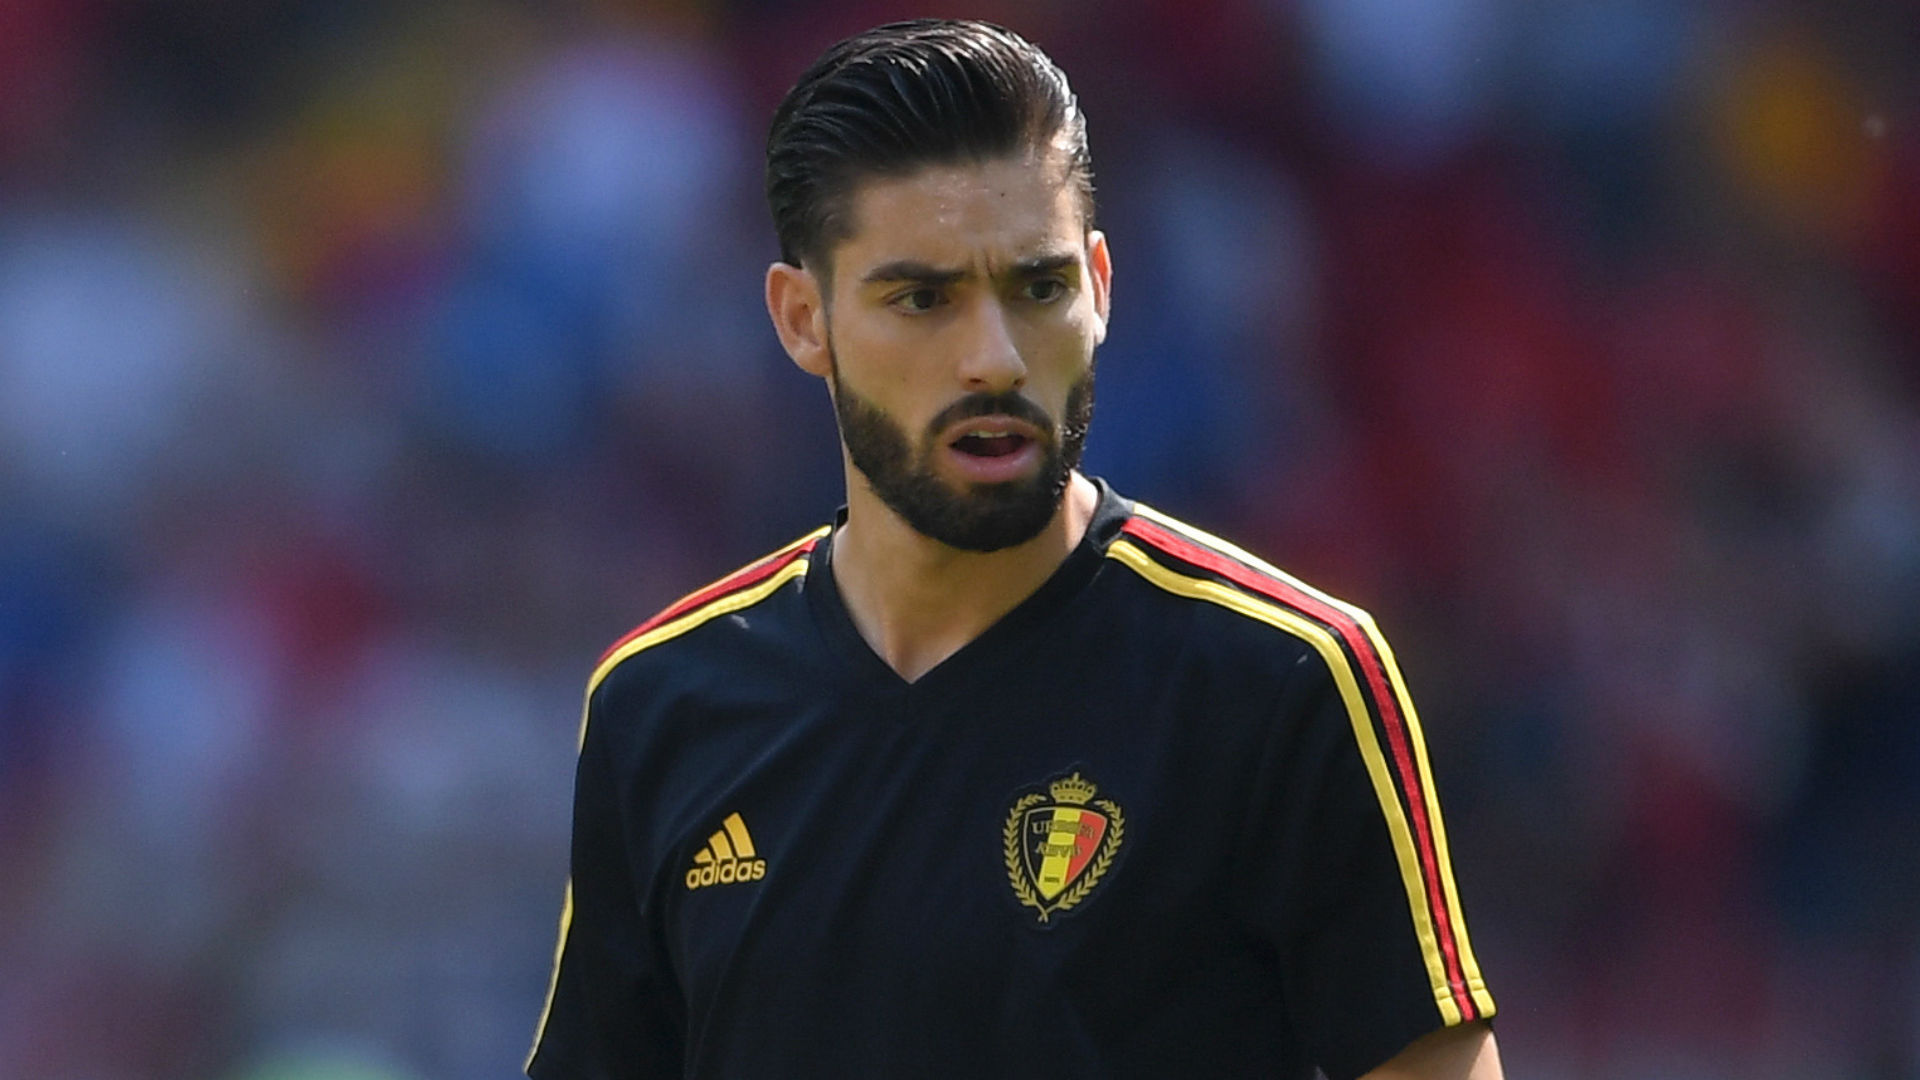 Carrasco suspended by Dalian Yifang for going AWOL amid Arsenal links